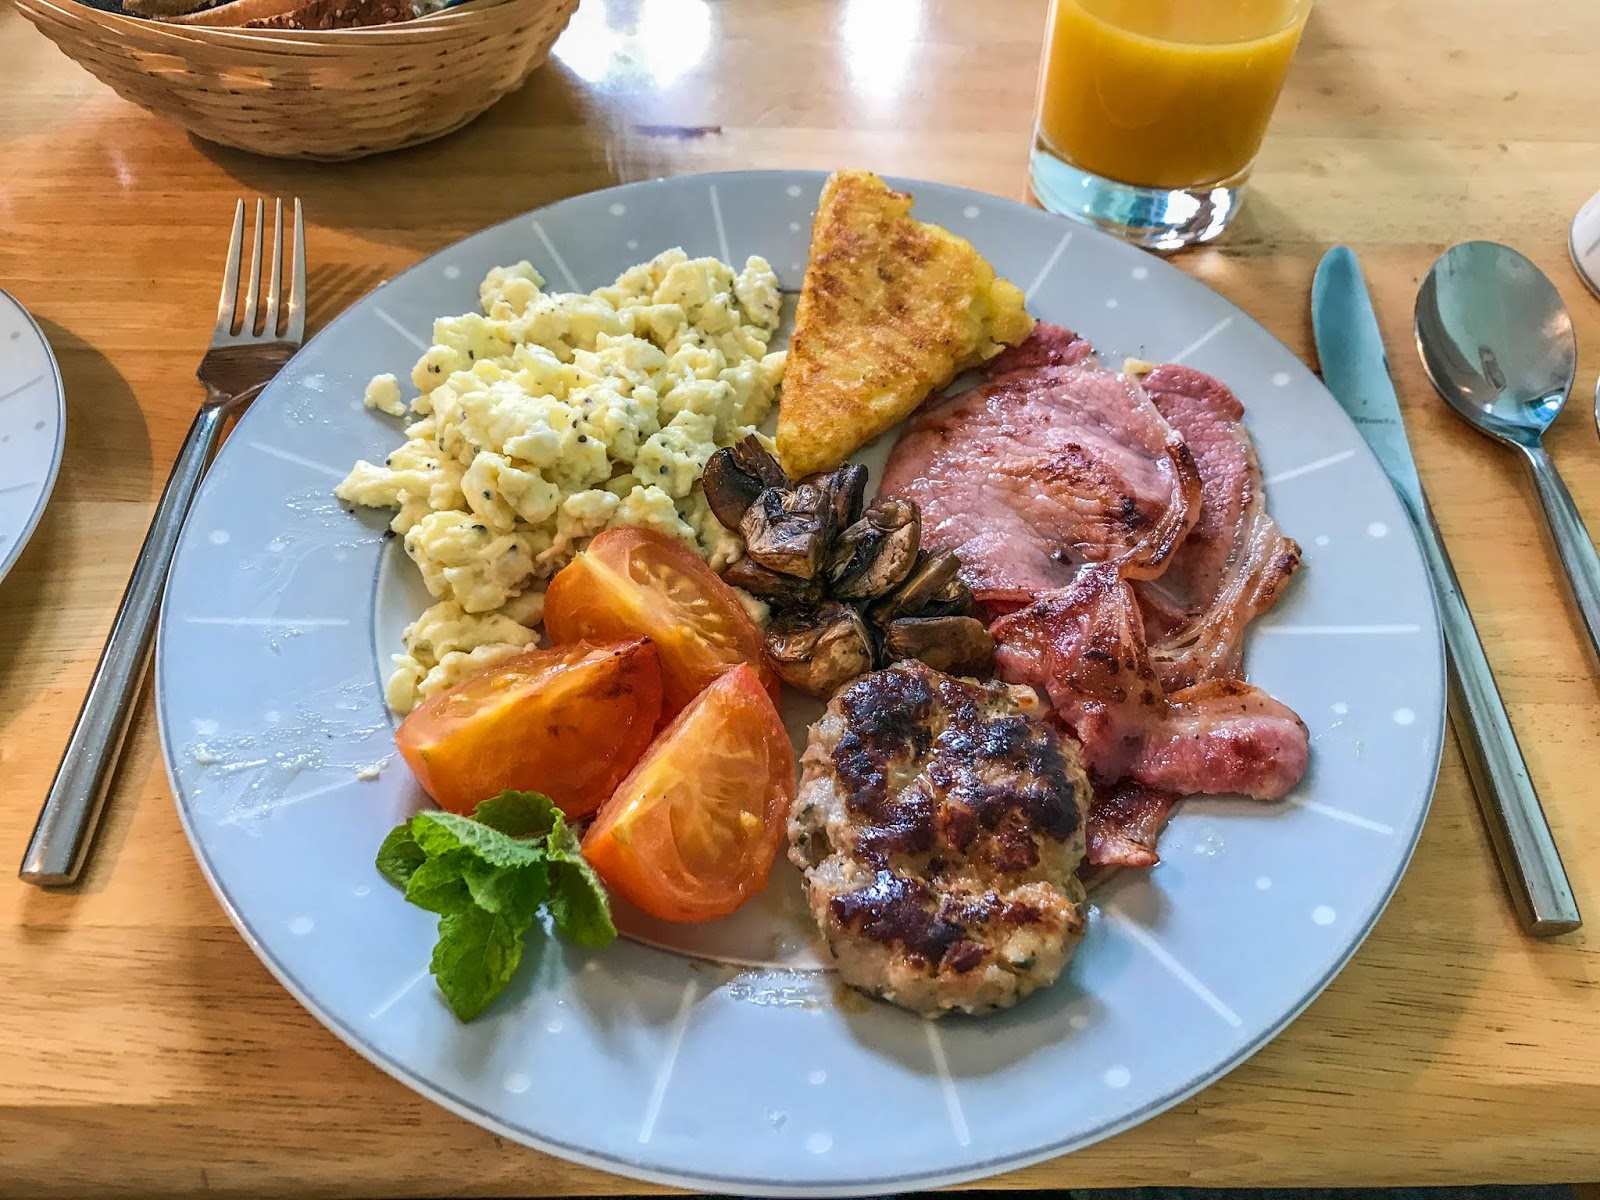 Scottish breakfast, forty augustus, Scotland, Summer in scotland, eggs, tomatoes, blood pudding